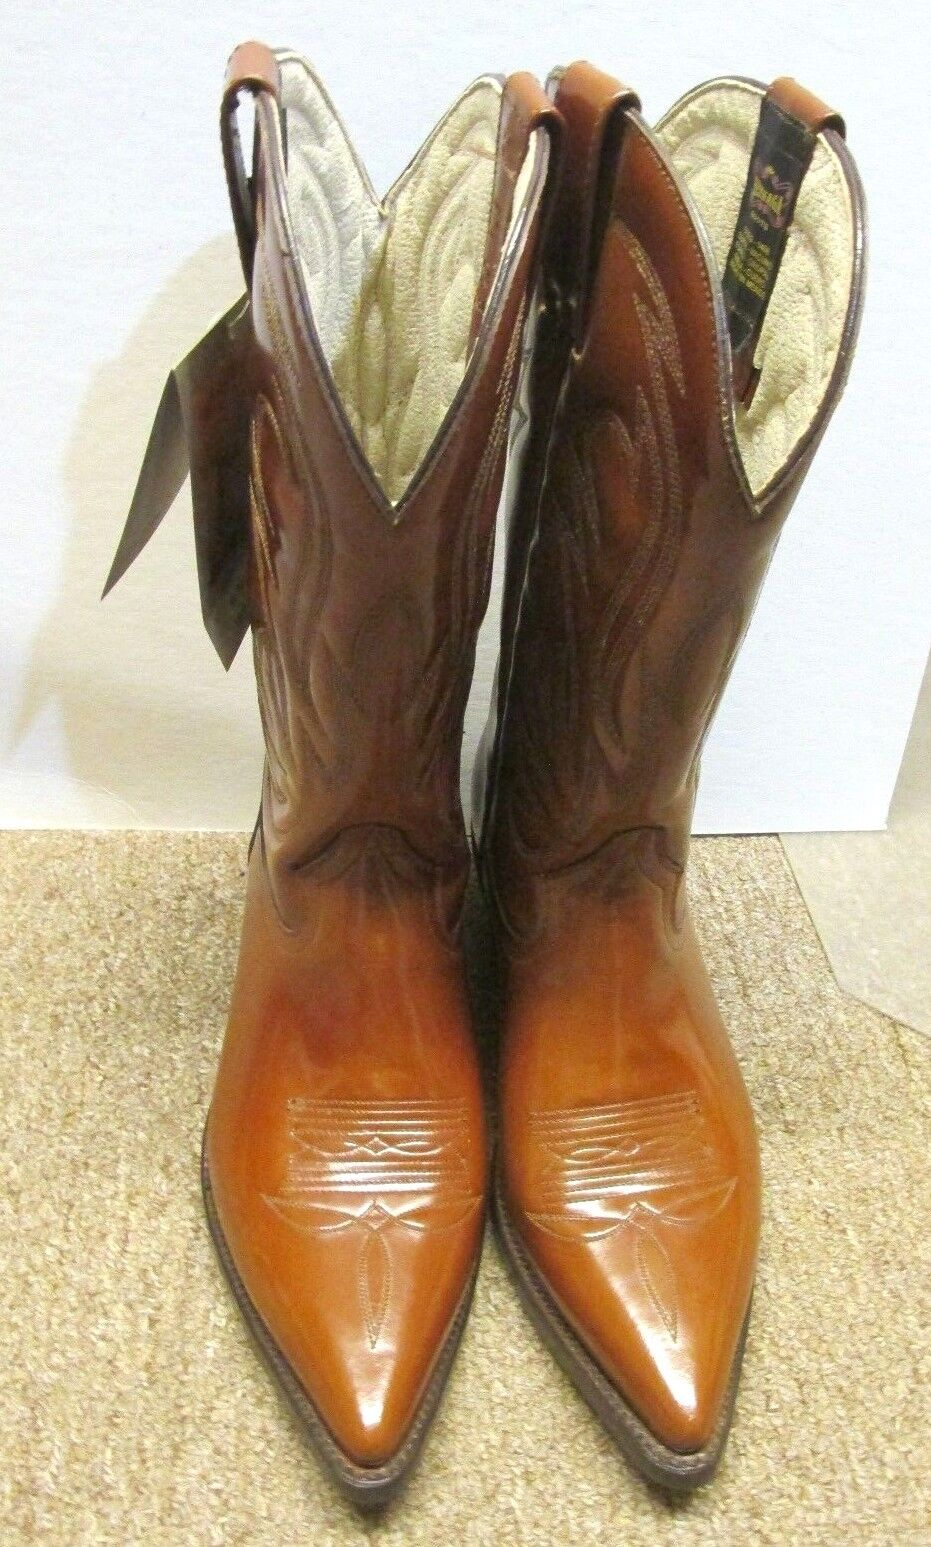 REYNAGA WESTERN LEATHER SOLES BOOT POINTY TOE BROWN VERY NICE SIZE 6.5 (26)WOMEN